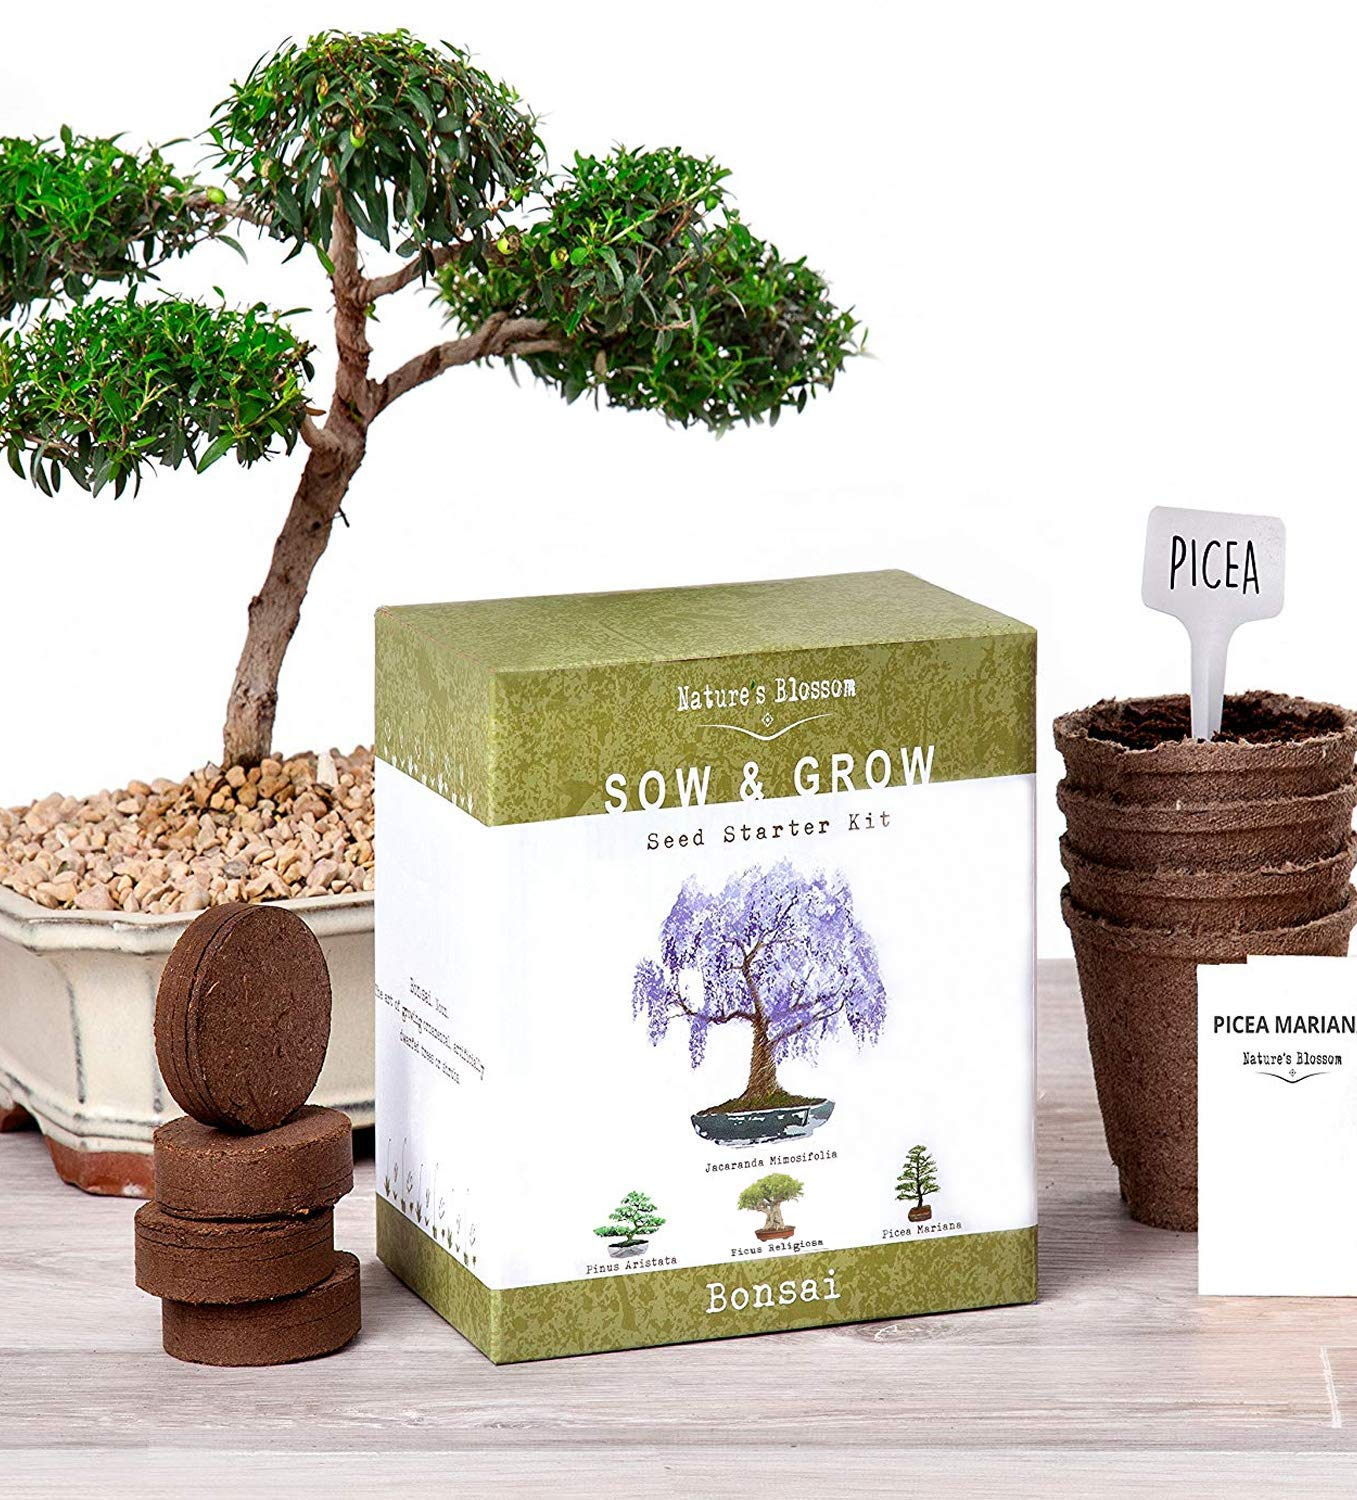 4 Bonsai Trees Germination Kit Complete Seed Starter Kit For Indoors Or Outdoors 646223852899 Ebay